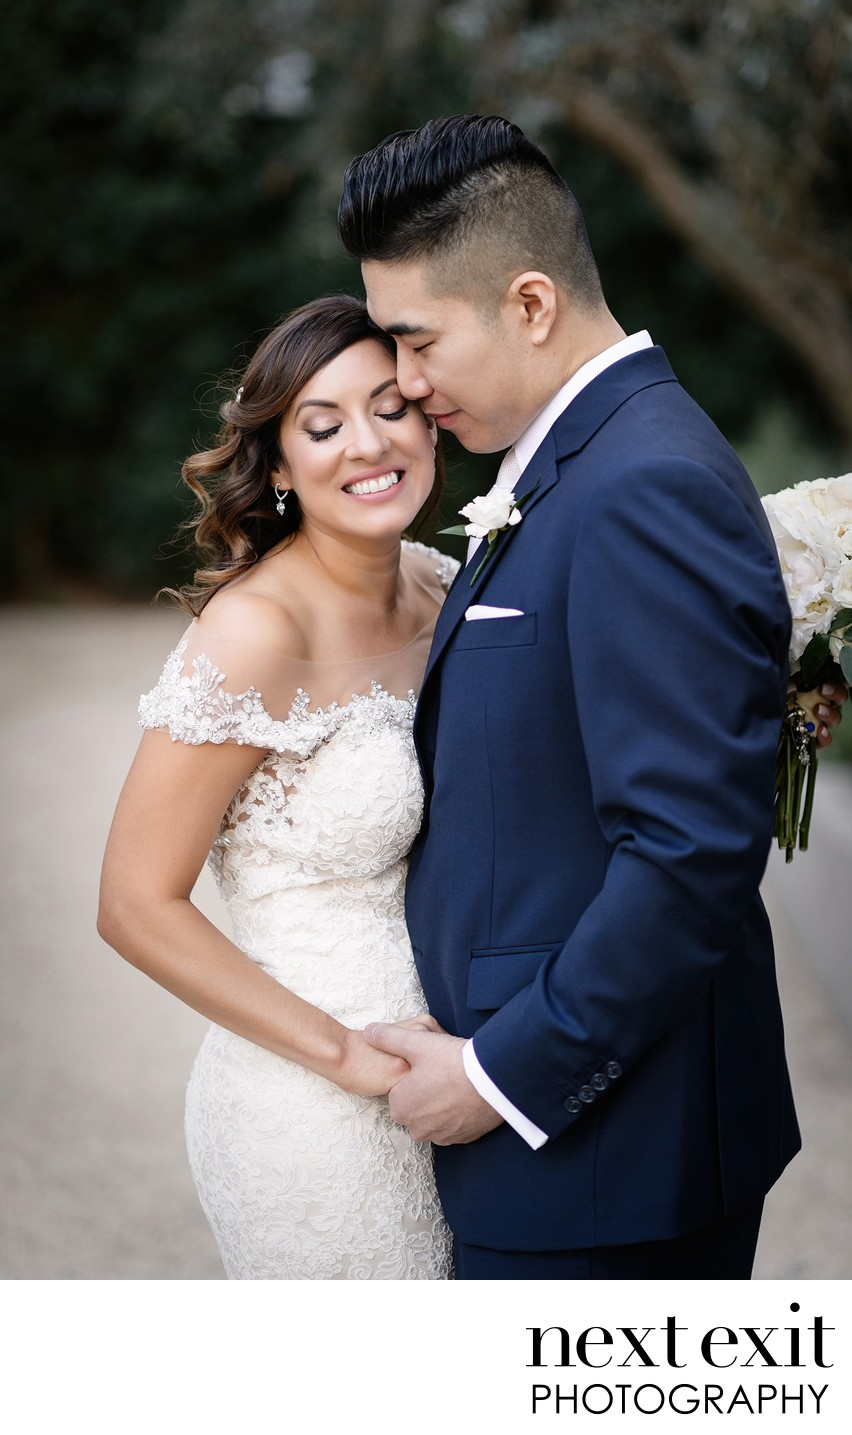 Top Vibiana Wedding Photographer - Los Angeles Wedding, Mitzvah & Portrait Photographer - Next Exit Photography